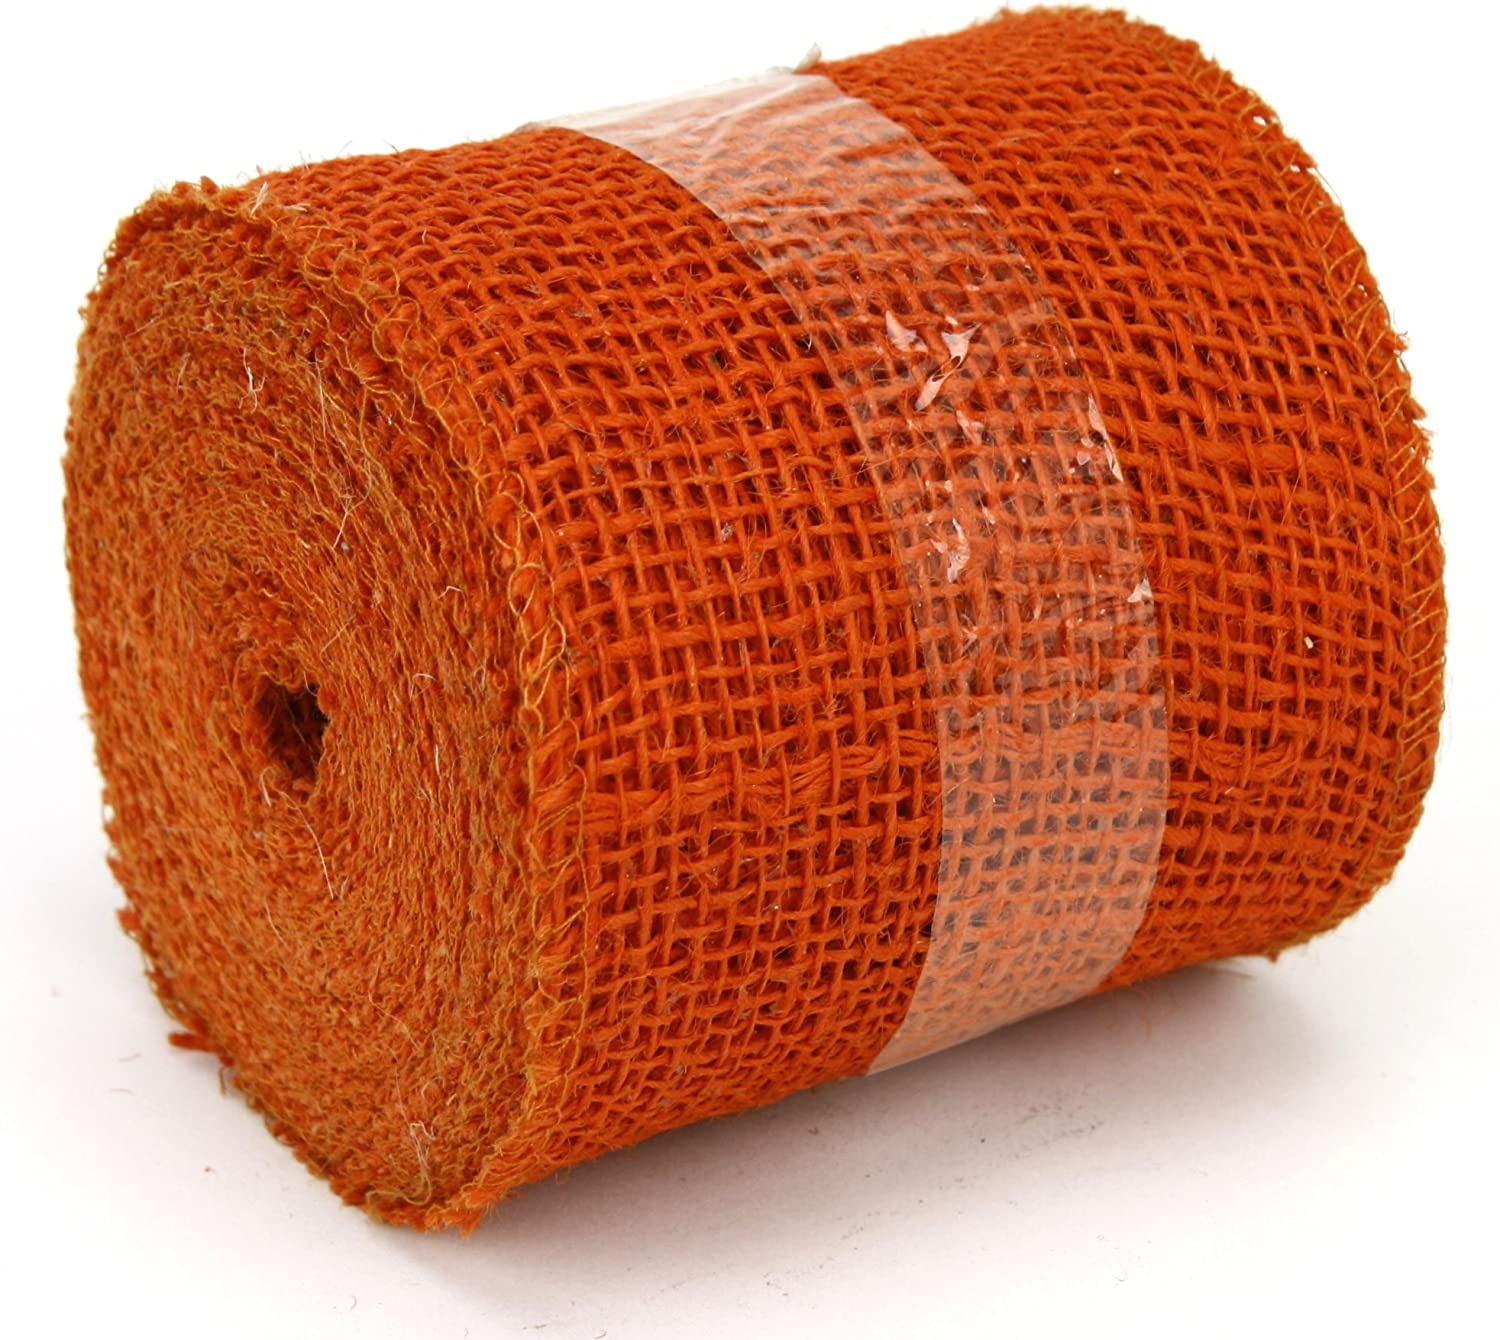 LIOOBO Burlap Ribbon Craft Ribbon Rustic Jute Ribbon Roll Gift Wrapping for Vintage Wedding Christmas Decor Floral Bows Trims Wreath Craft Red